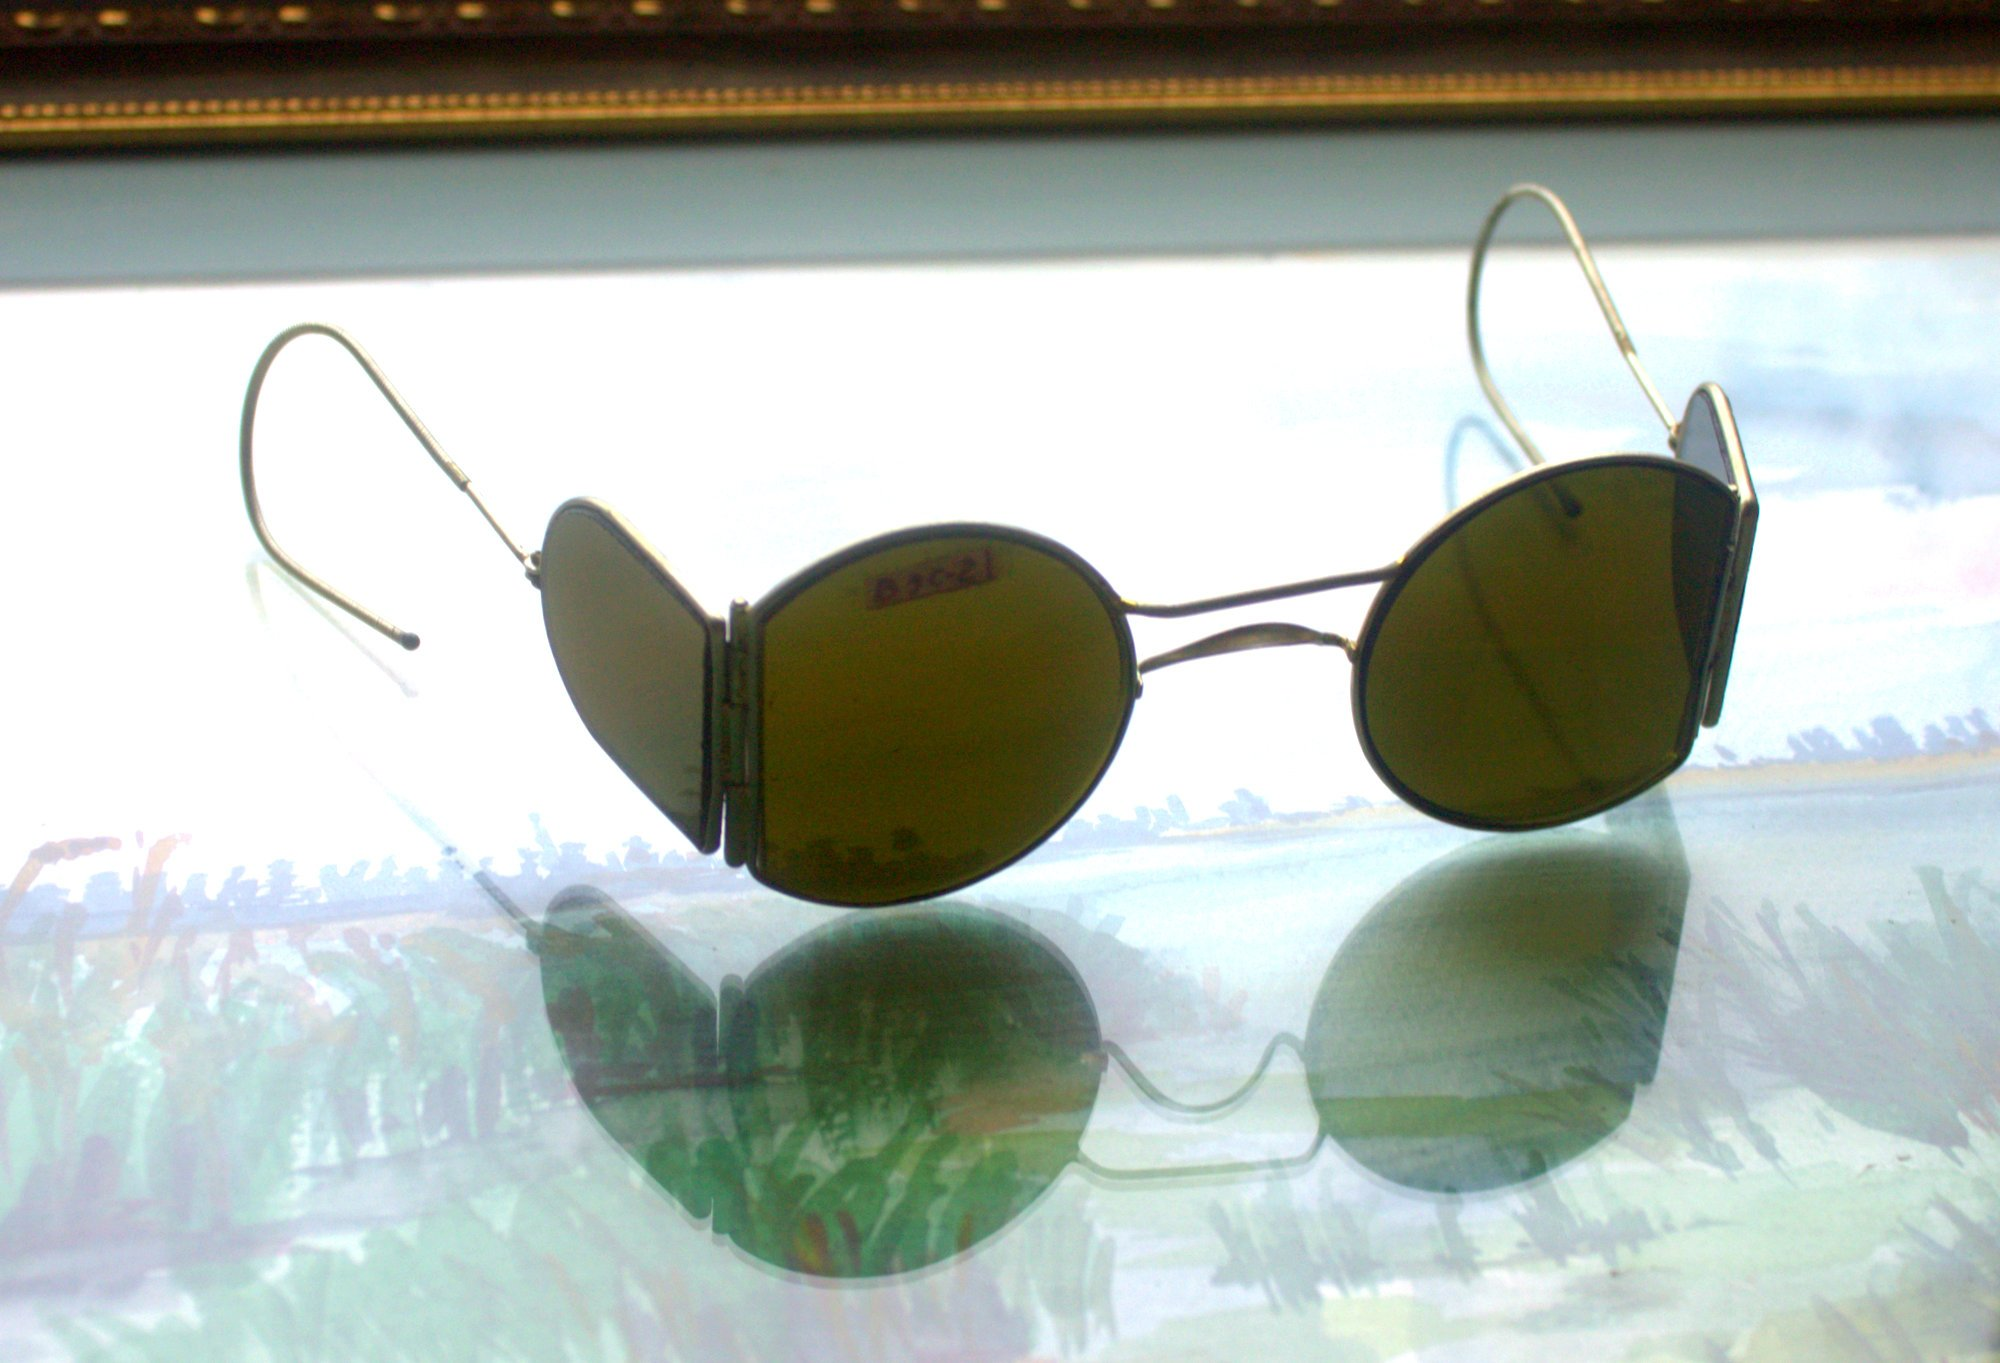 CHRISTMAS GIFT 1930s New Steampunk sunglasses with side shields New Vintage sunglasses WW2 USSR Green glass lenses by Rushnichok